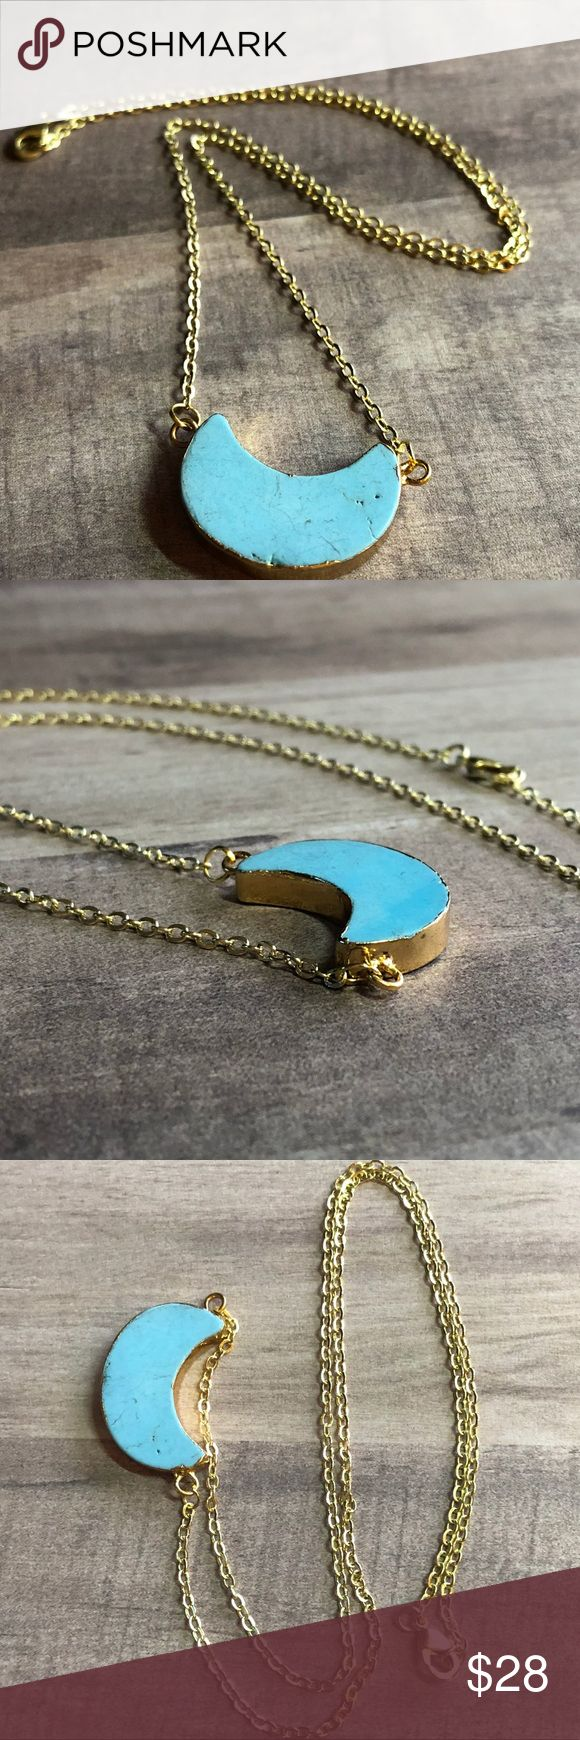 """🆕Howlite Turquoise Crescent Moon Gold Pendant! Natural Blue Howlite Turquoise Stone, Crescent Moon Double End Connecter Pendant, Surrounded in 18K Gold Filling. ✨ I Have MANY Natural Stone/Druzy Pendants I am Listing! Adding to my Natural Gems- Loving the Layered Look with these!✨ 18K GF Necklace, 16-18"""" Length; Pendant Approx. 1""""X0.7""""X0.2""""📸These are my pics of the actual item!  *NO TRADES *Prices are FIRM-Listed at LOWEST Price Unless BUNDLED! *Sales are Final-Please Read Descriptions…"""